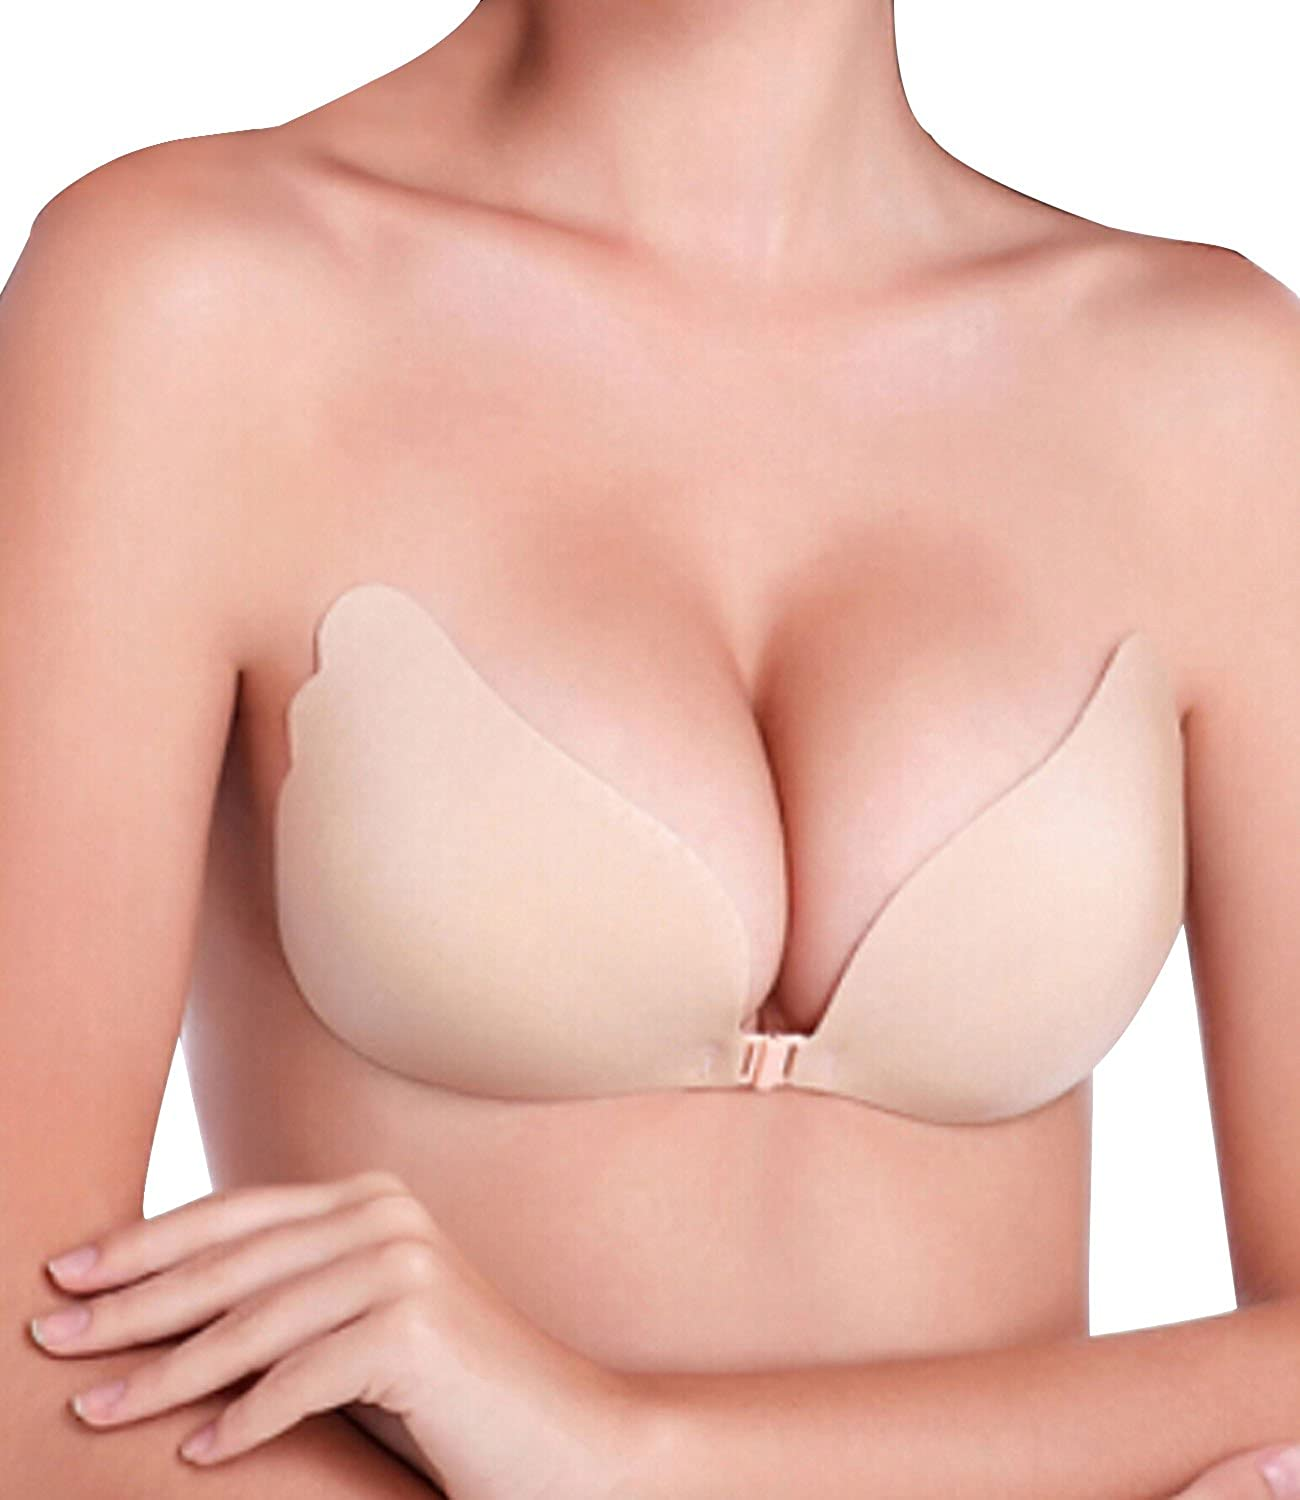 NINGMI Women's Reusable Invisible Strapless Self Adhesive Silicone Push up Bra ST10732-B/SY